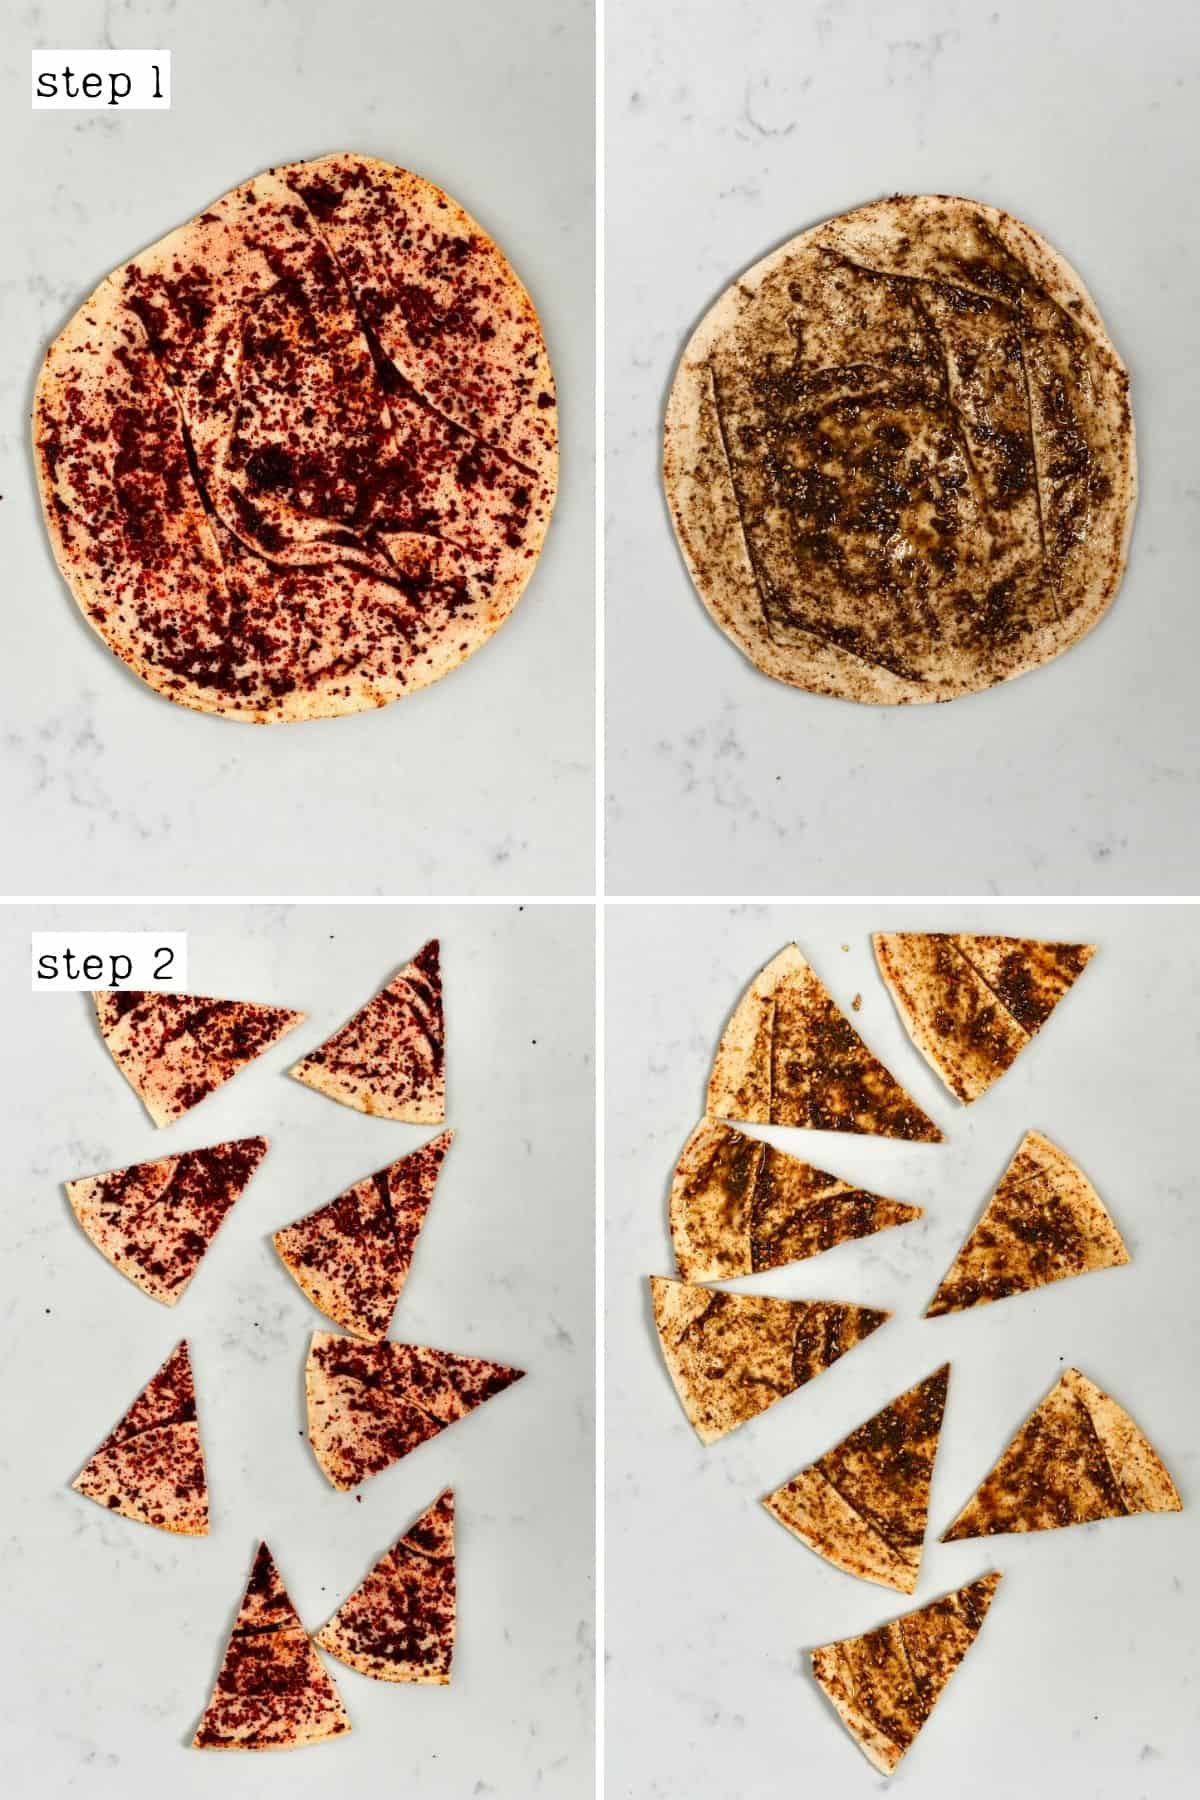 Steps for making flavored pita chips